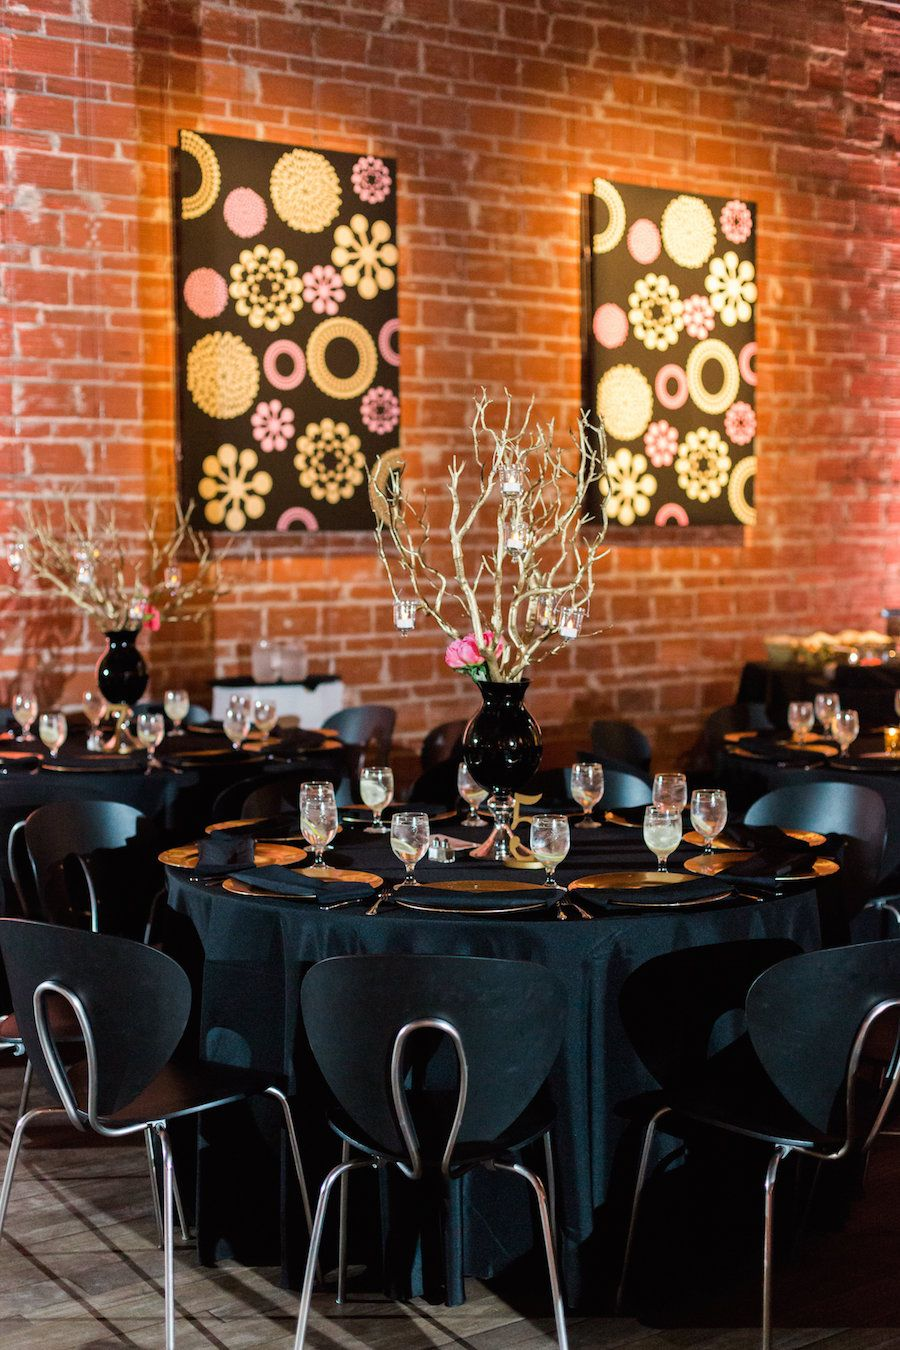 St. Pete Wedding Reception Table Decor with Wooden Twigs in Black Vase Centerpieces with Candles |Black and Chrome Wedding Reception Chairs| St. Pete Wedding and Event Space NOVA 535